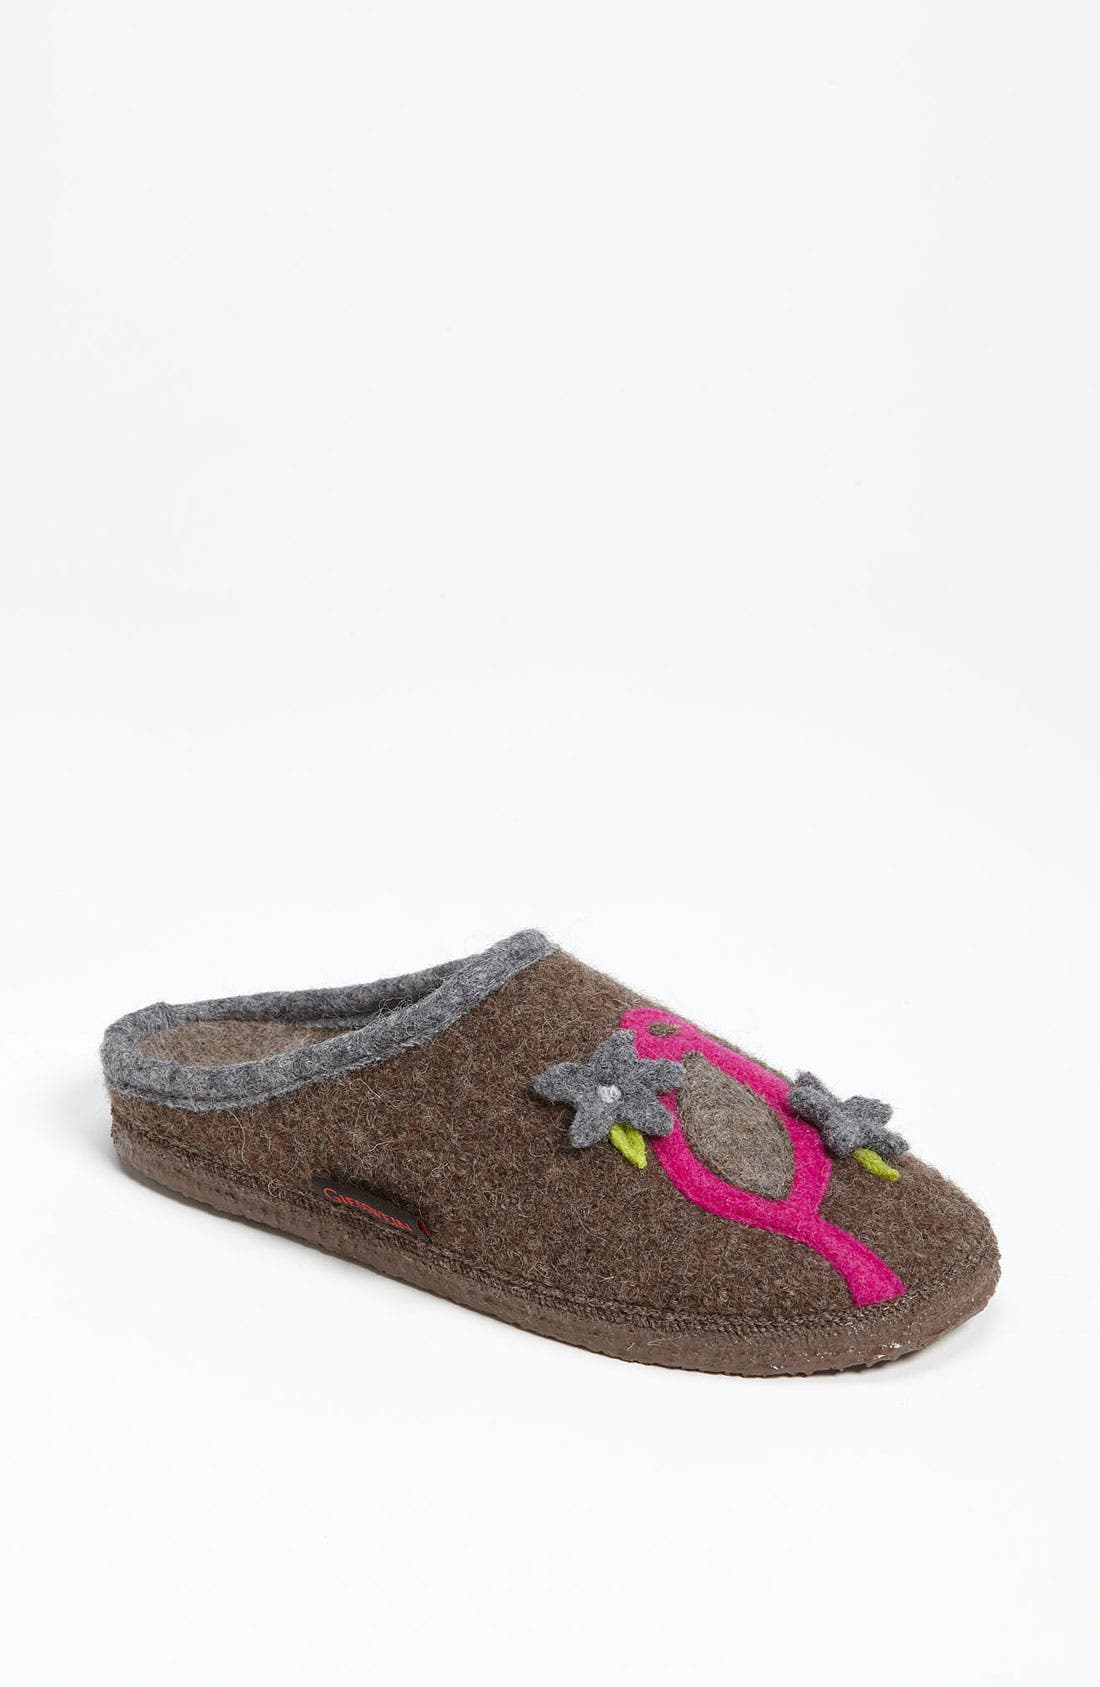 Main Image - Giesswein 'Birdhouse' Wool Slipper